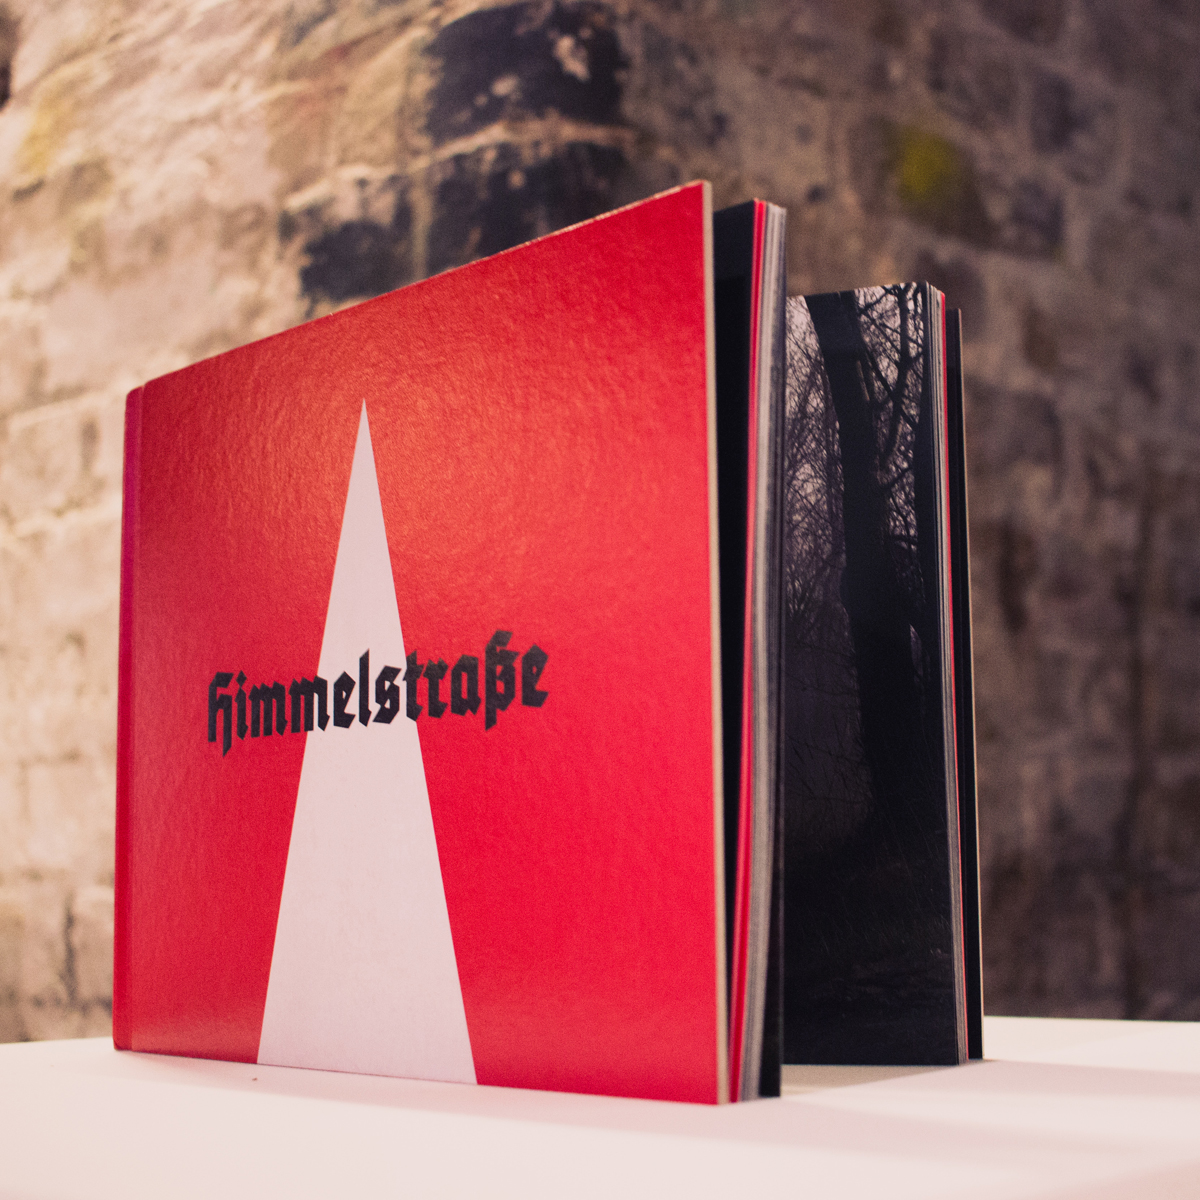 Himmelstrasse, the book of Brian Griffin's powerful photographic project, designed by Browns. A Best in Book winner. Image: wemakepictures.co.uk